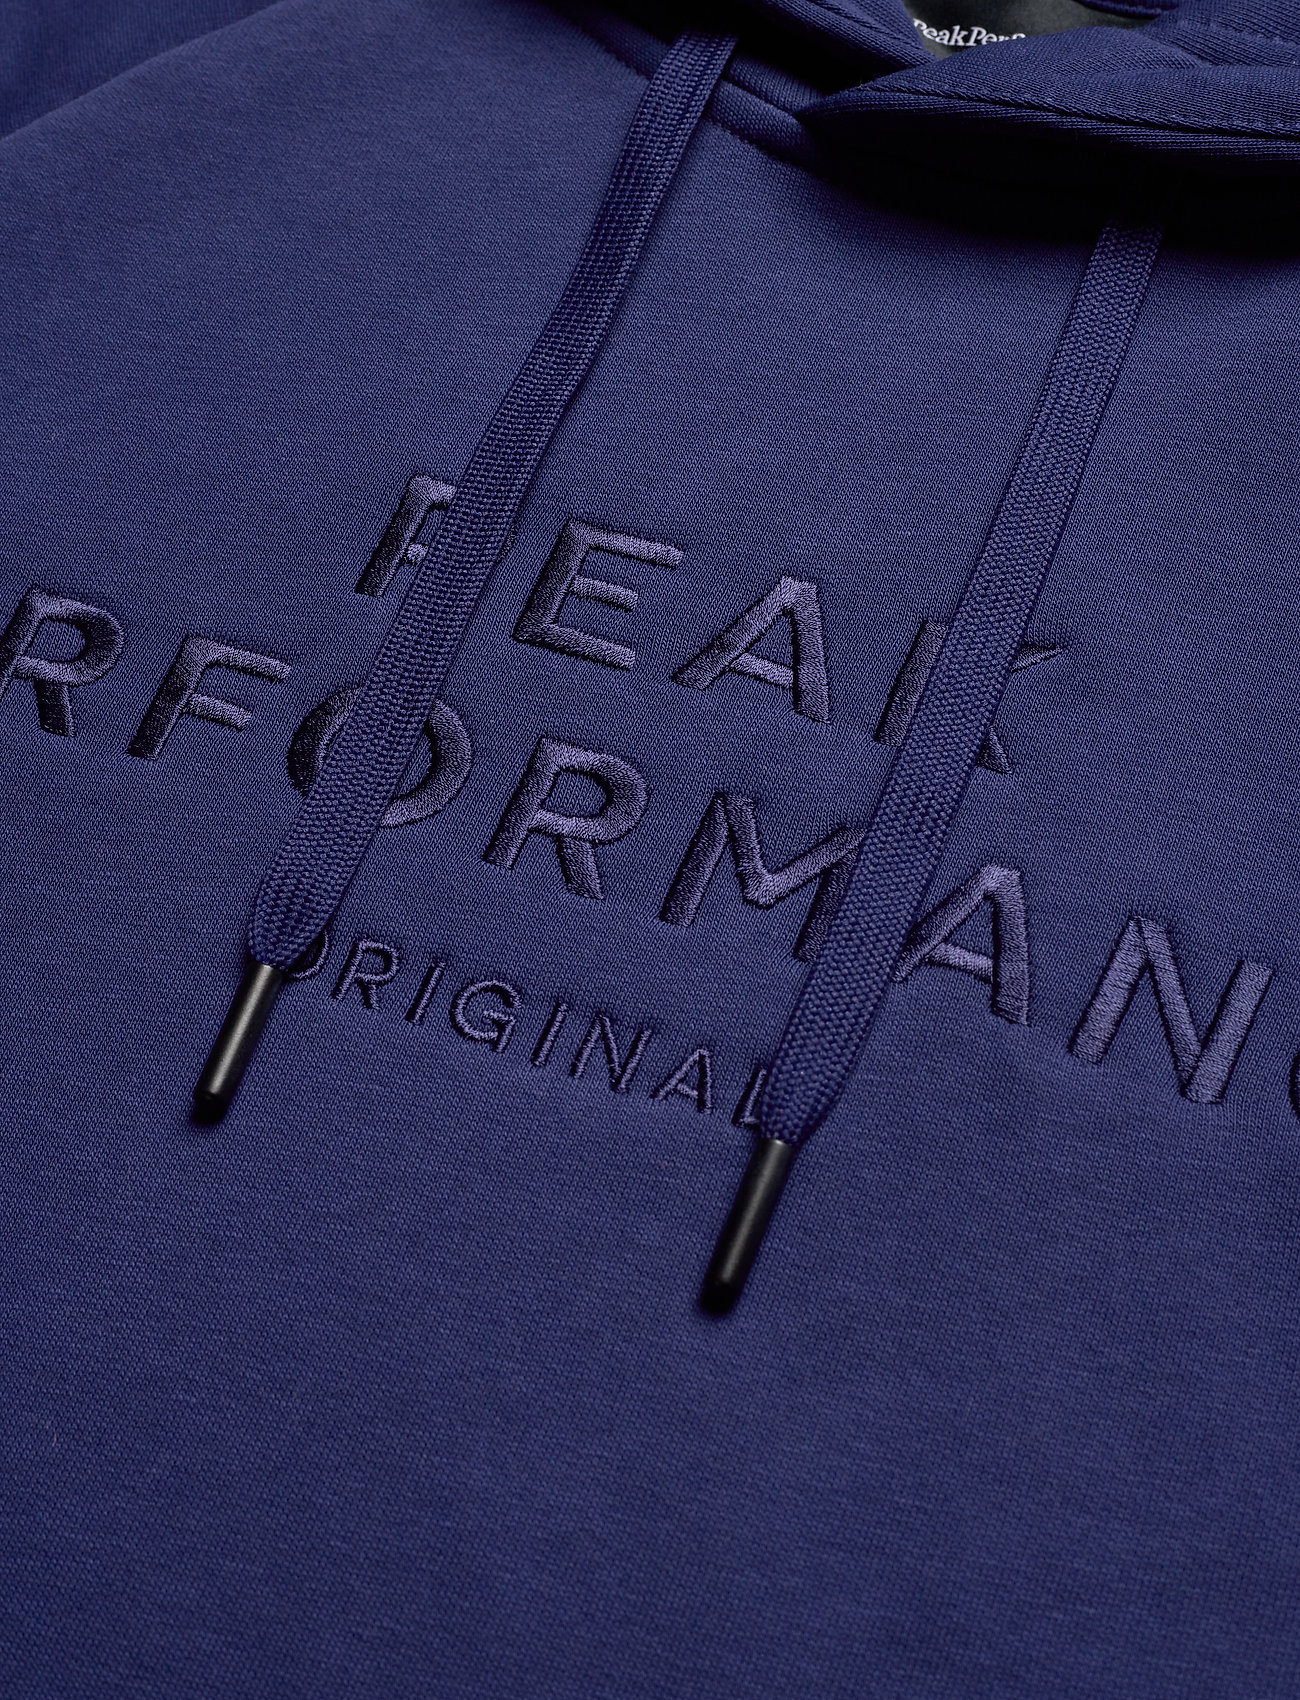 Peak Performance M Orig H - Sweatshirts Blueprint